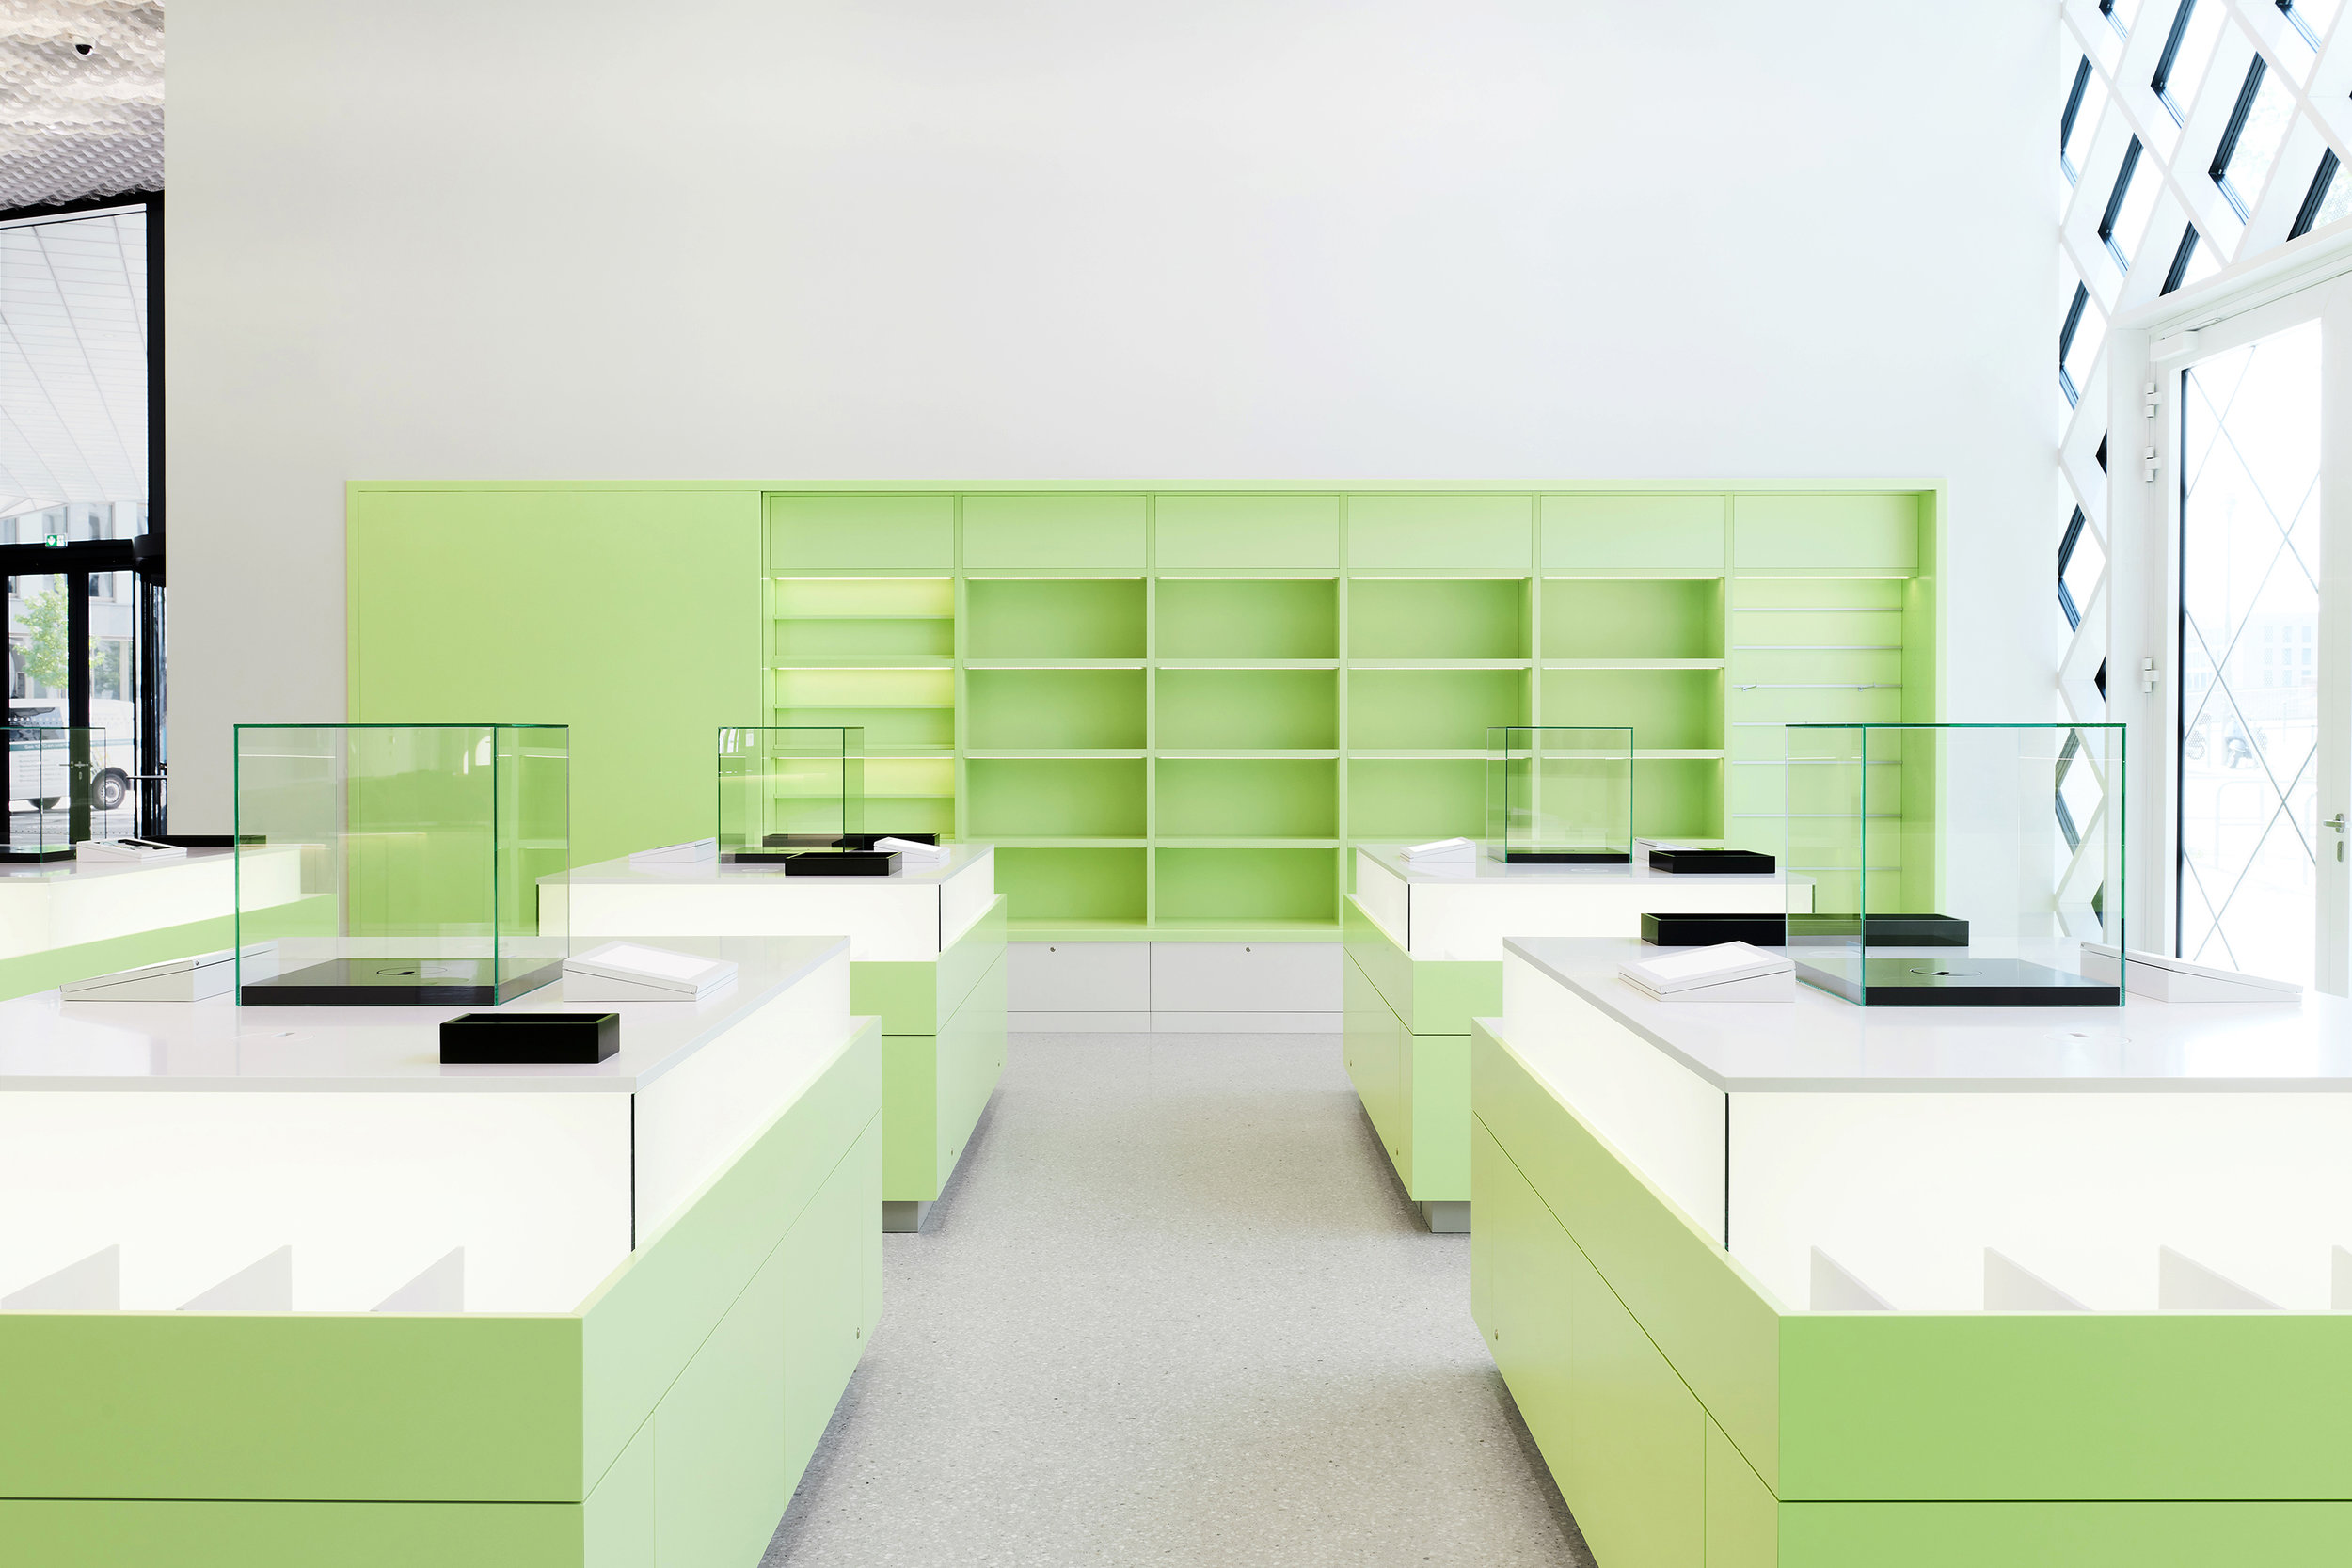 futurium_retail-interior-design_coordination-berlin-03.jpg